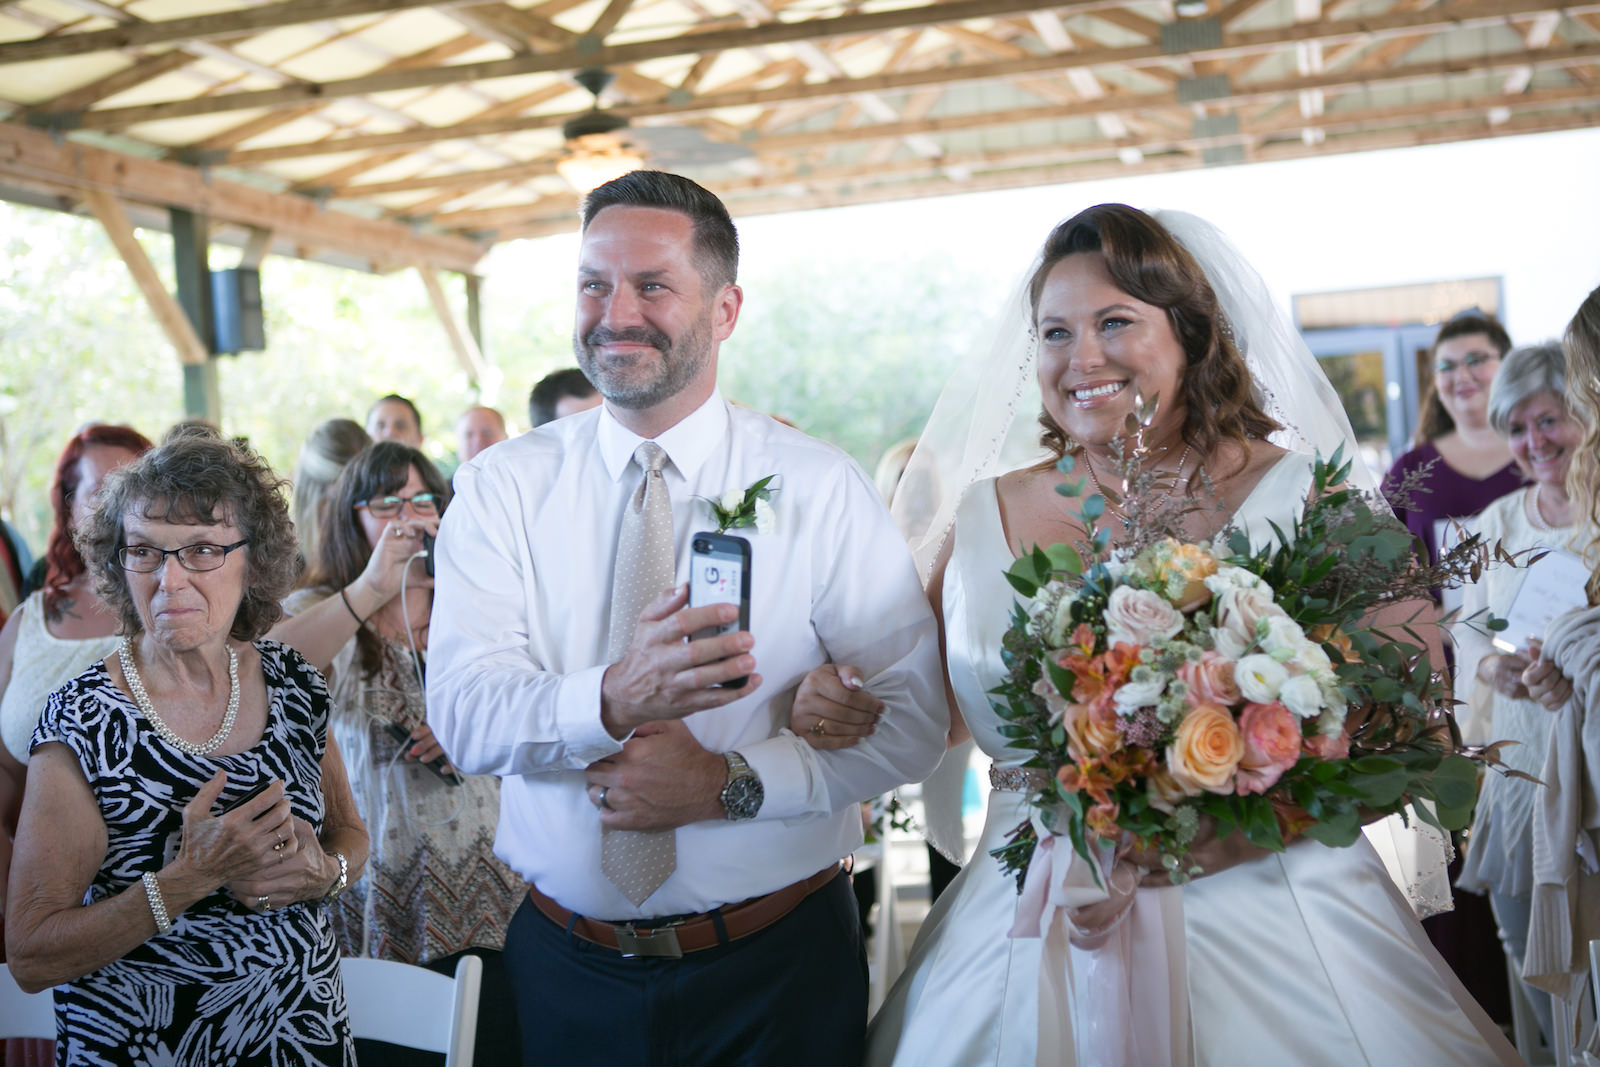 Tampa Bride Walking Down the Aisle Holding Colorful Spring Pink, White and Orange Roses with Greenery Floral Bouquet | Wedding Photographer Carrie Wildes Photography | Wedding Dress Truly Forever Bridal | Wedding Hair and Makeup Michele Renee the Studio